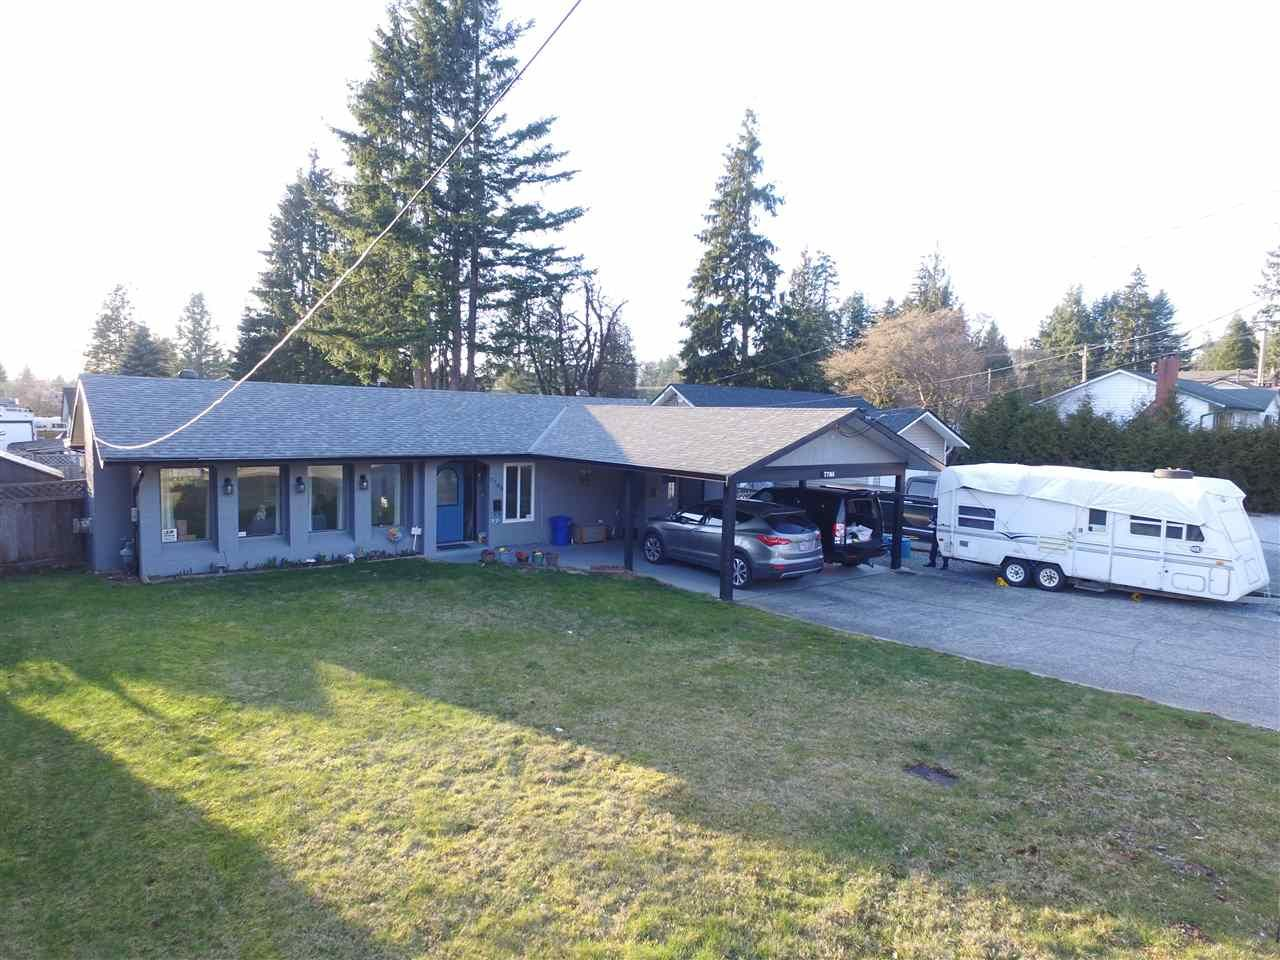 Main Photo: 7785 HURD Street in Mission: Mission BC House for sale : MLS®# R2553244